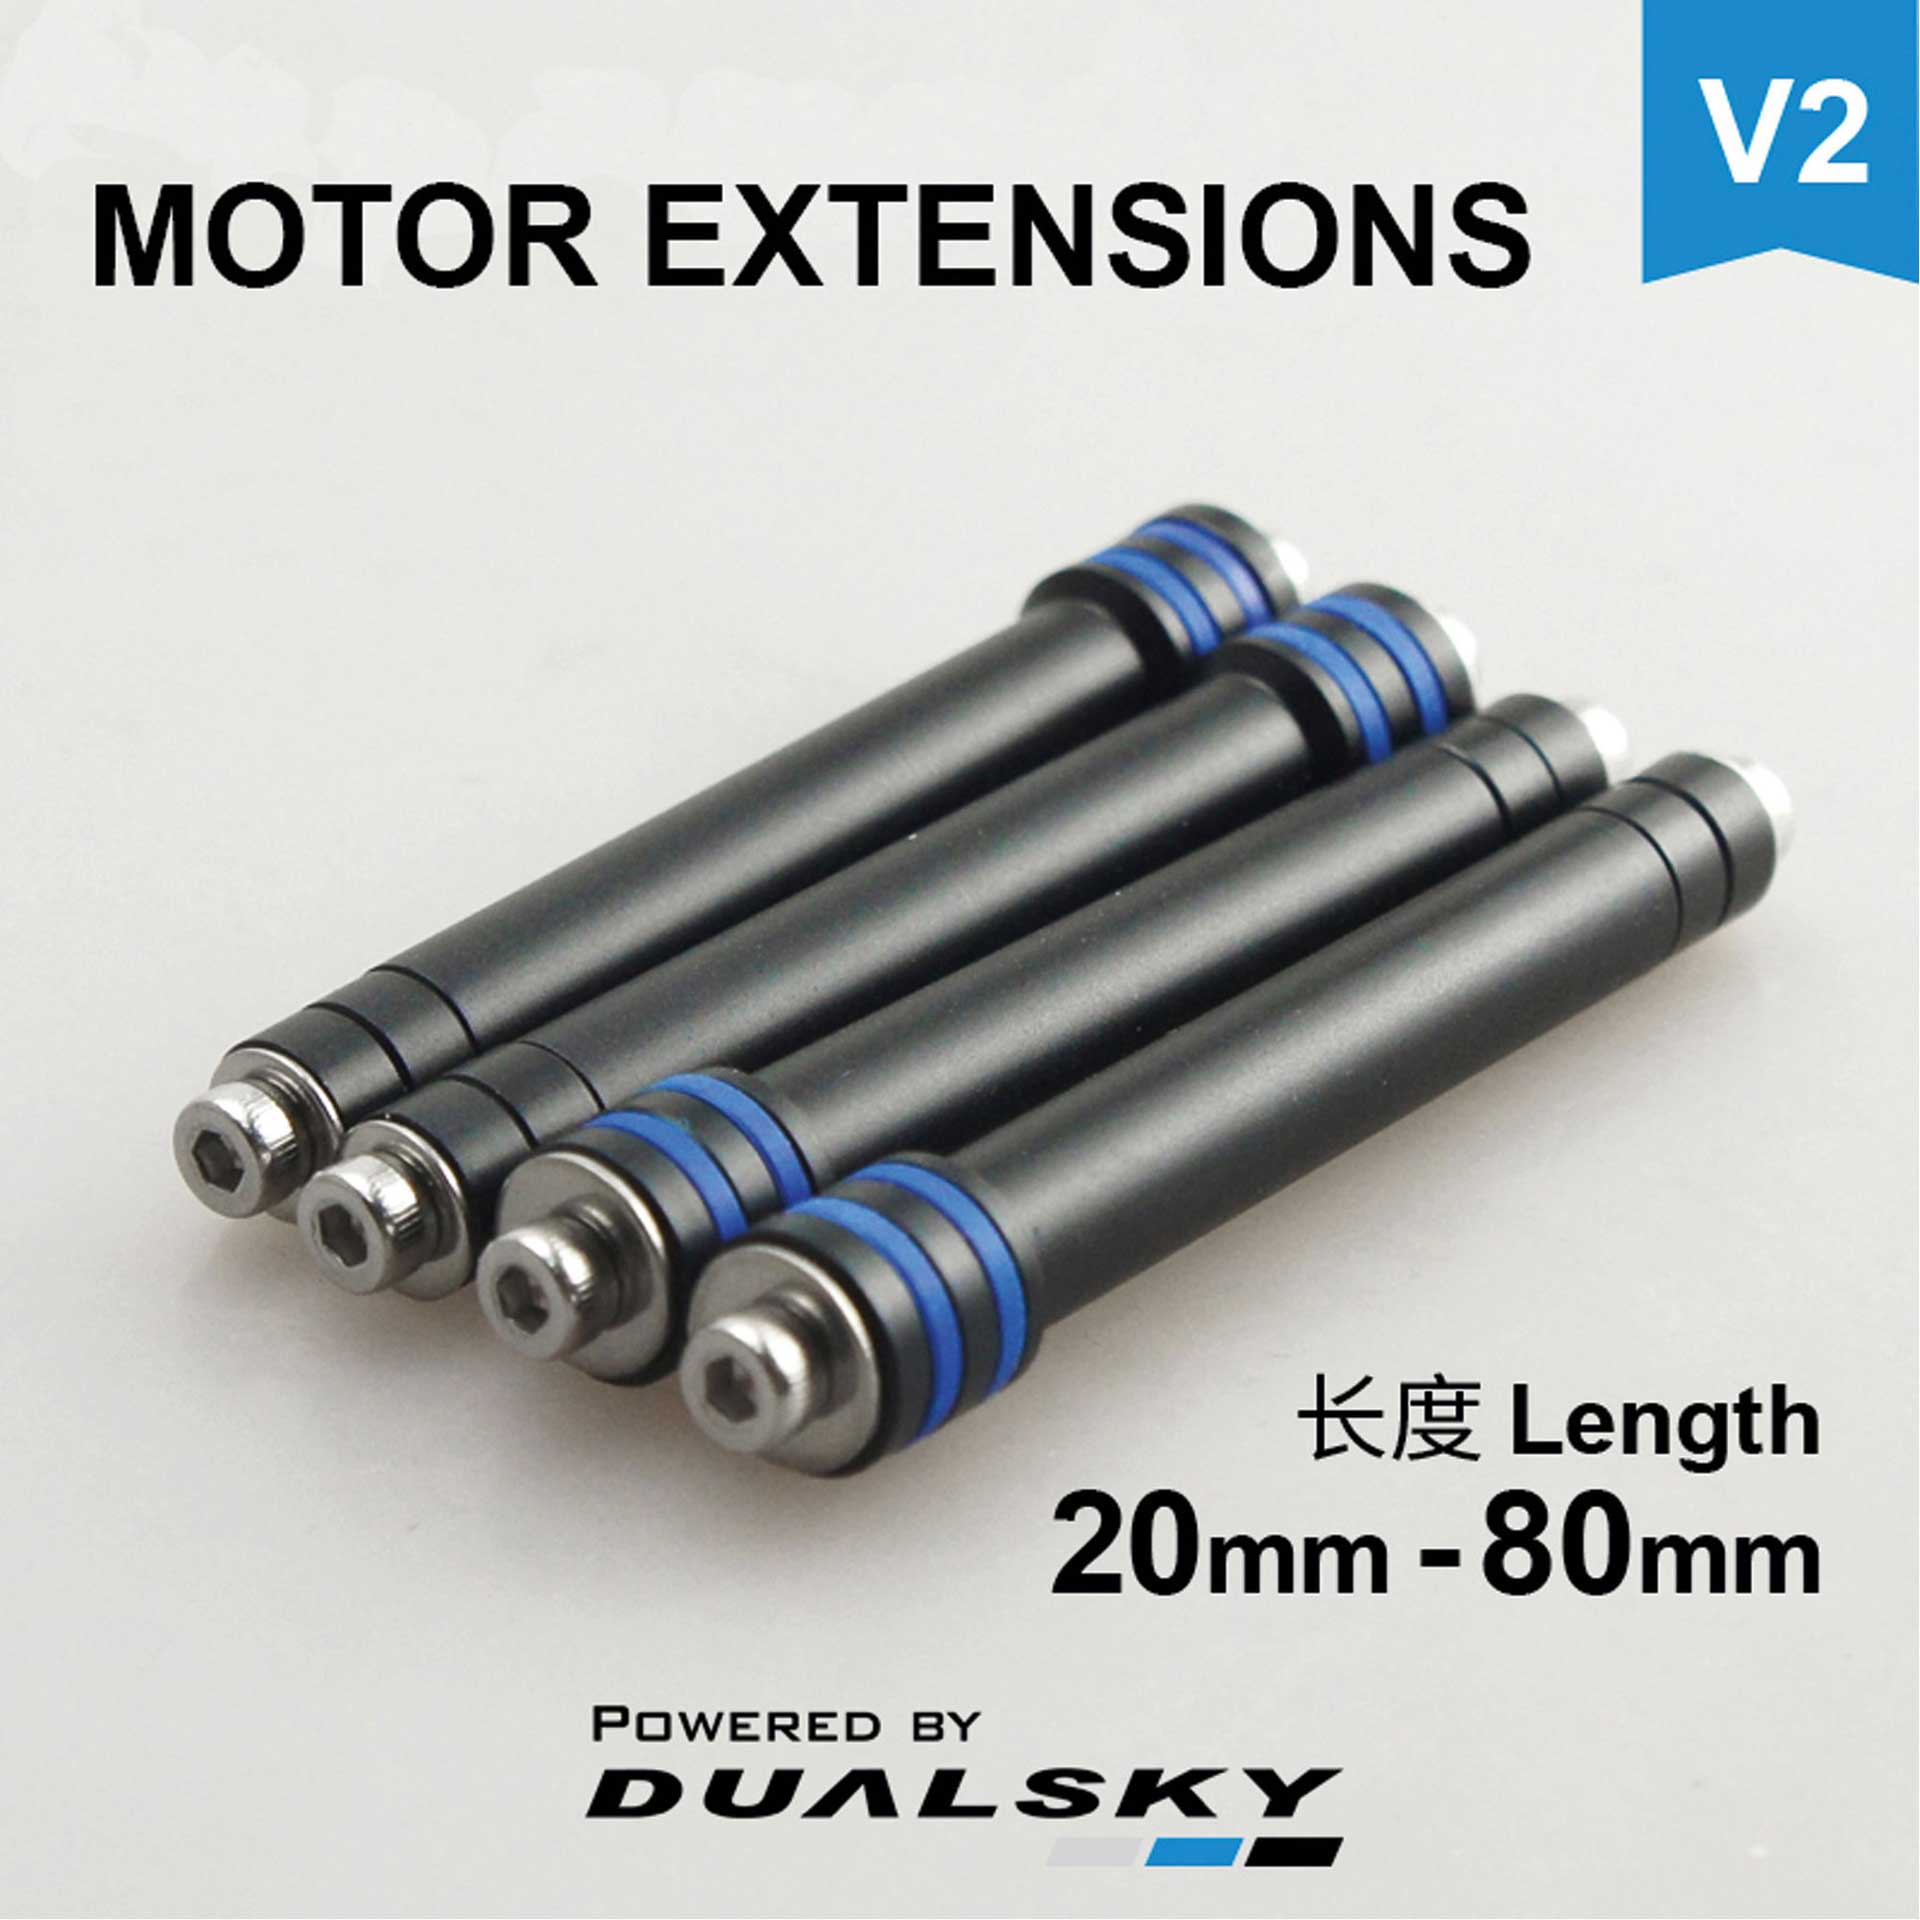 DUALSKY MOTOR EXTENSIONS V8 ME4-60 LENGTH 40 TO 60MM ADJUSTABLE WITH SCREWS stand off